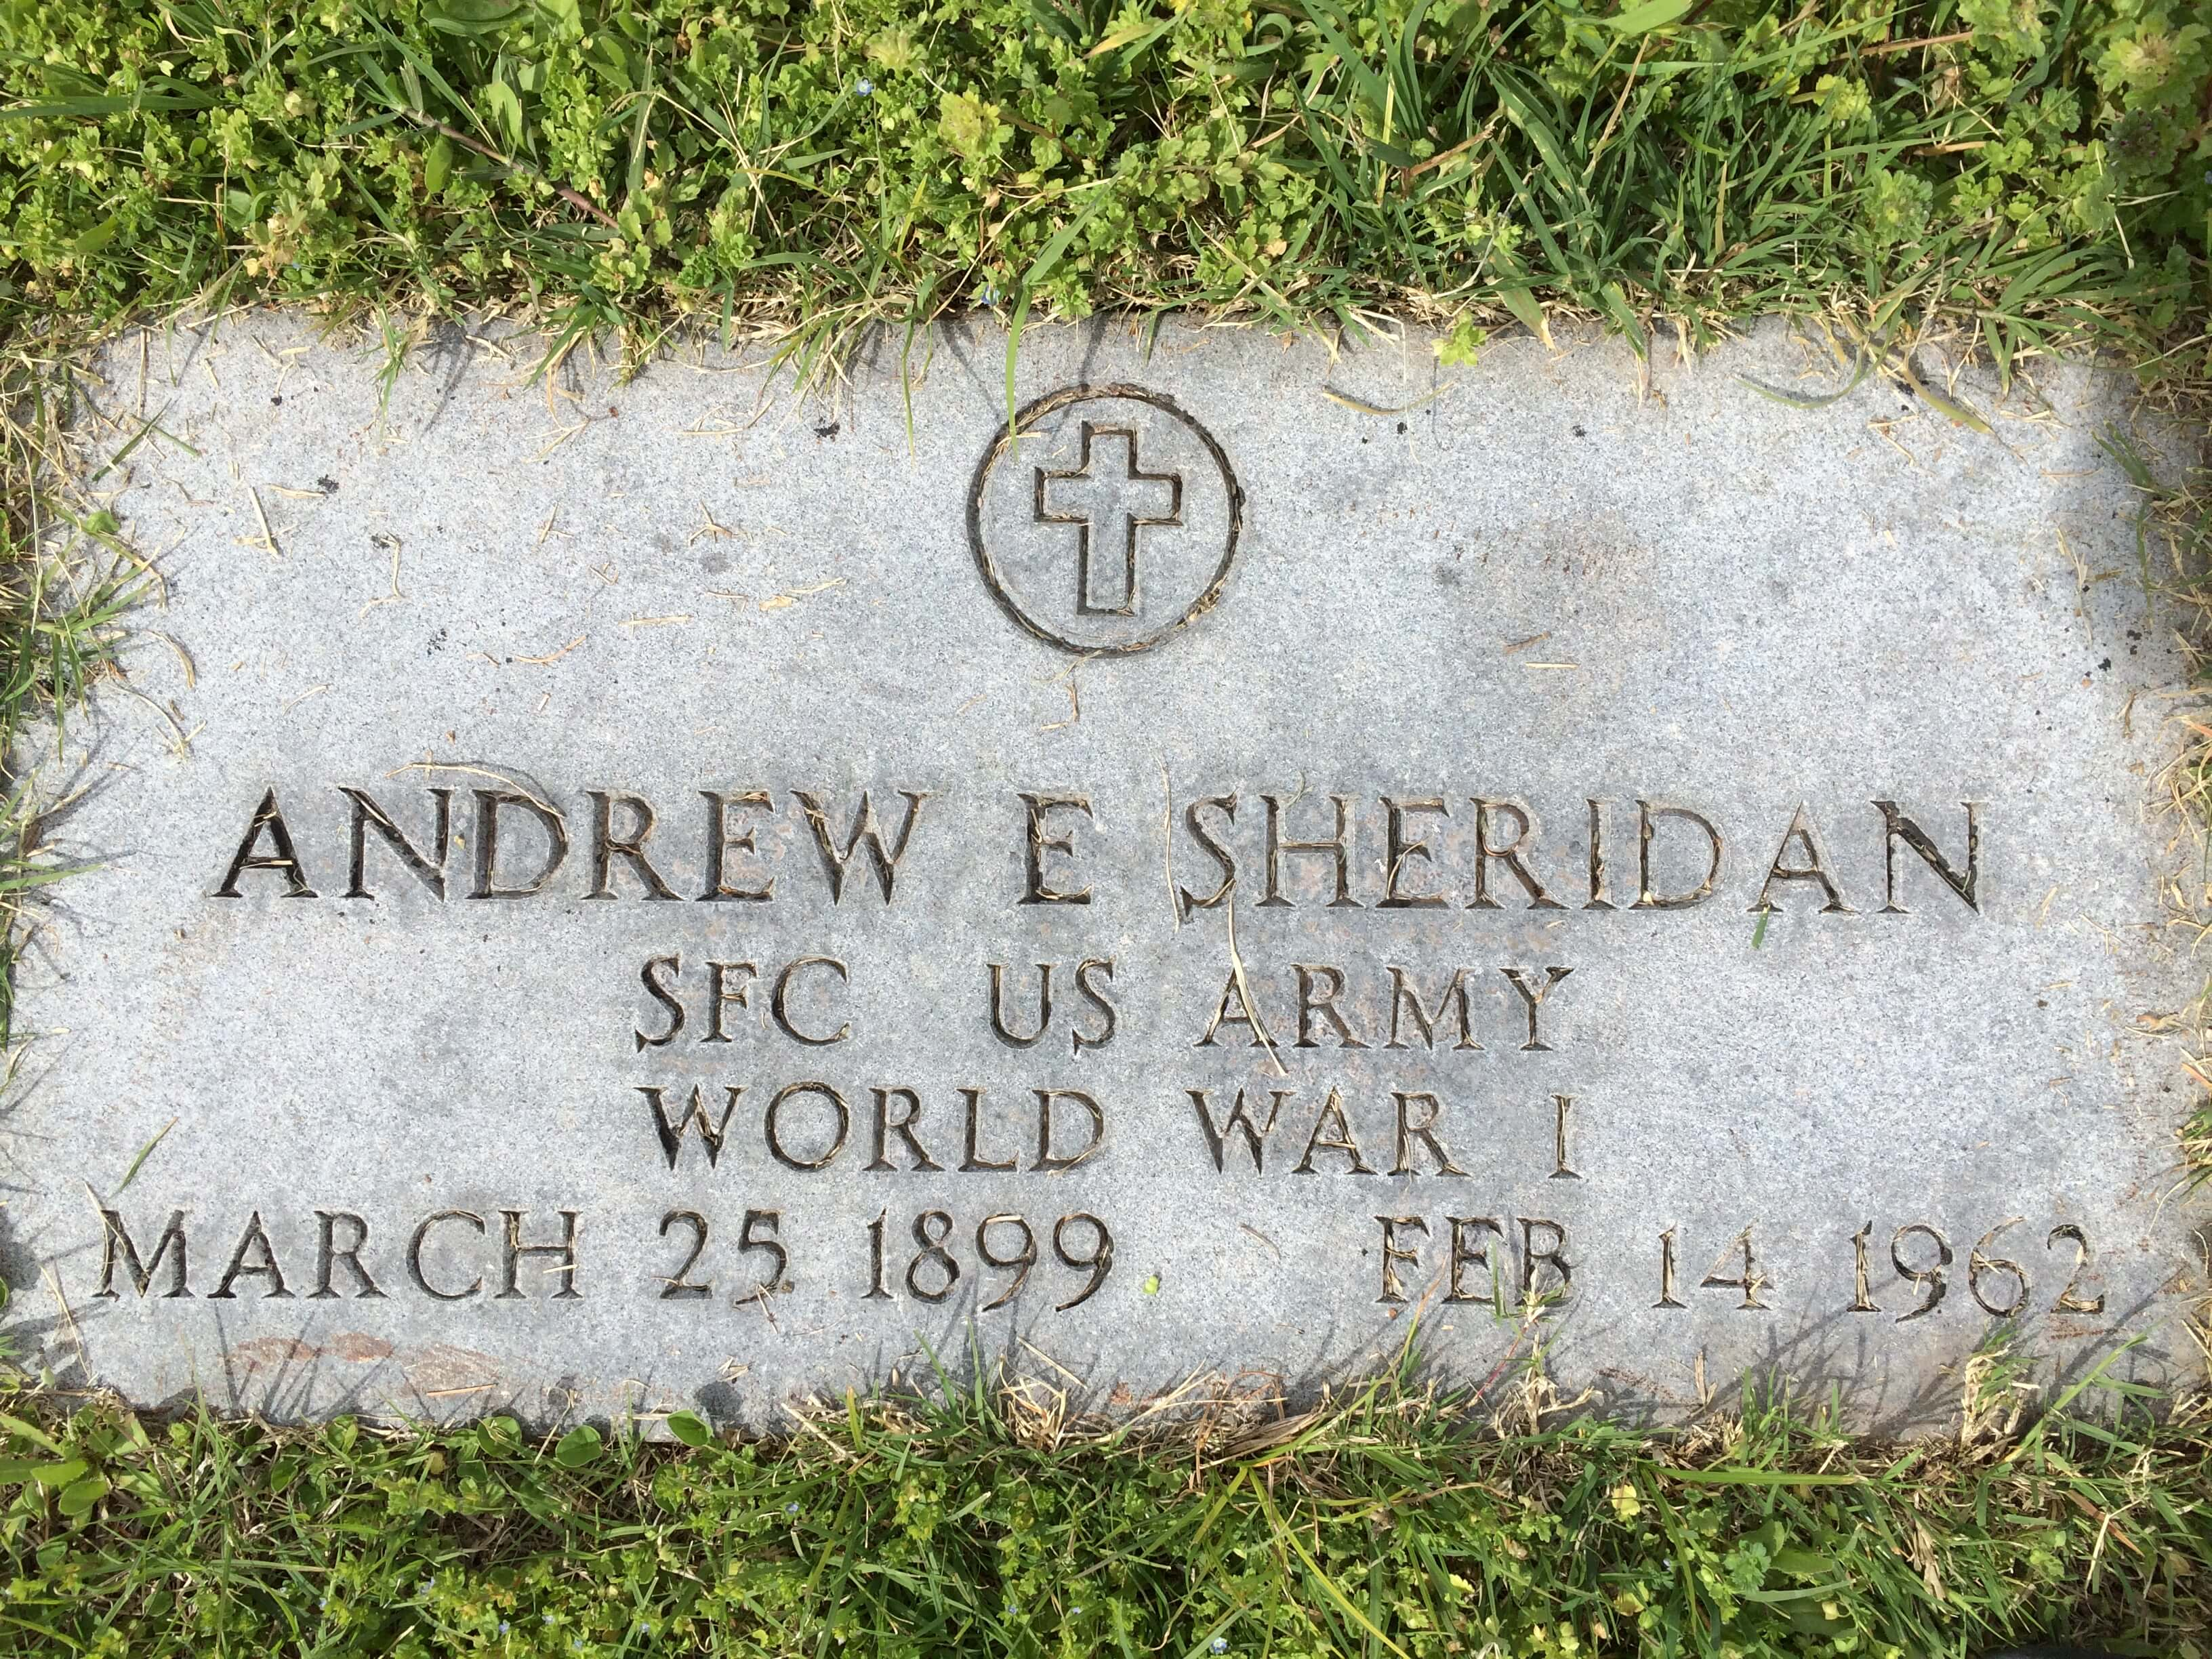 Carpet Cleaner Uses Free Time to Clean Veterans' Gravestones